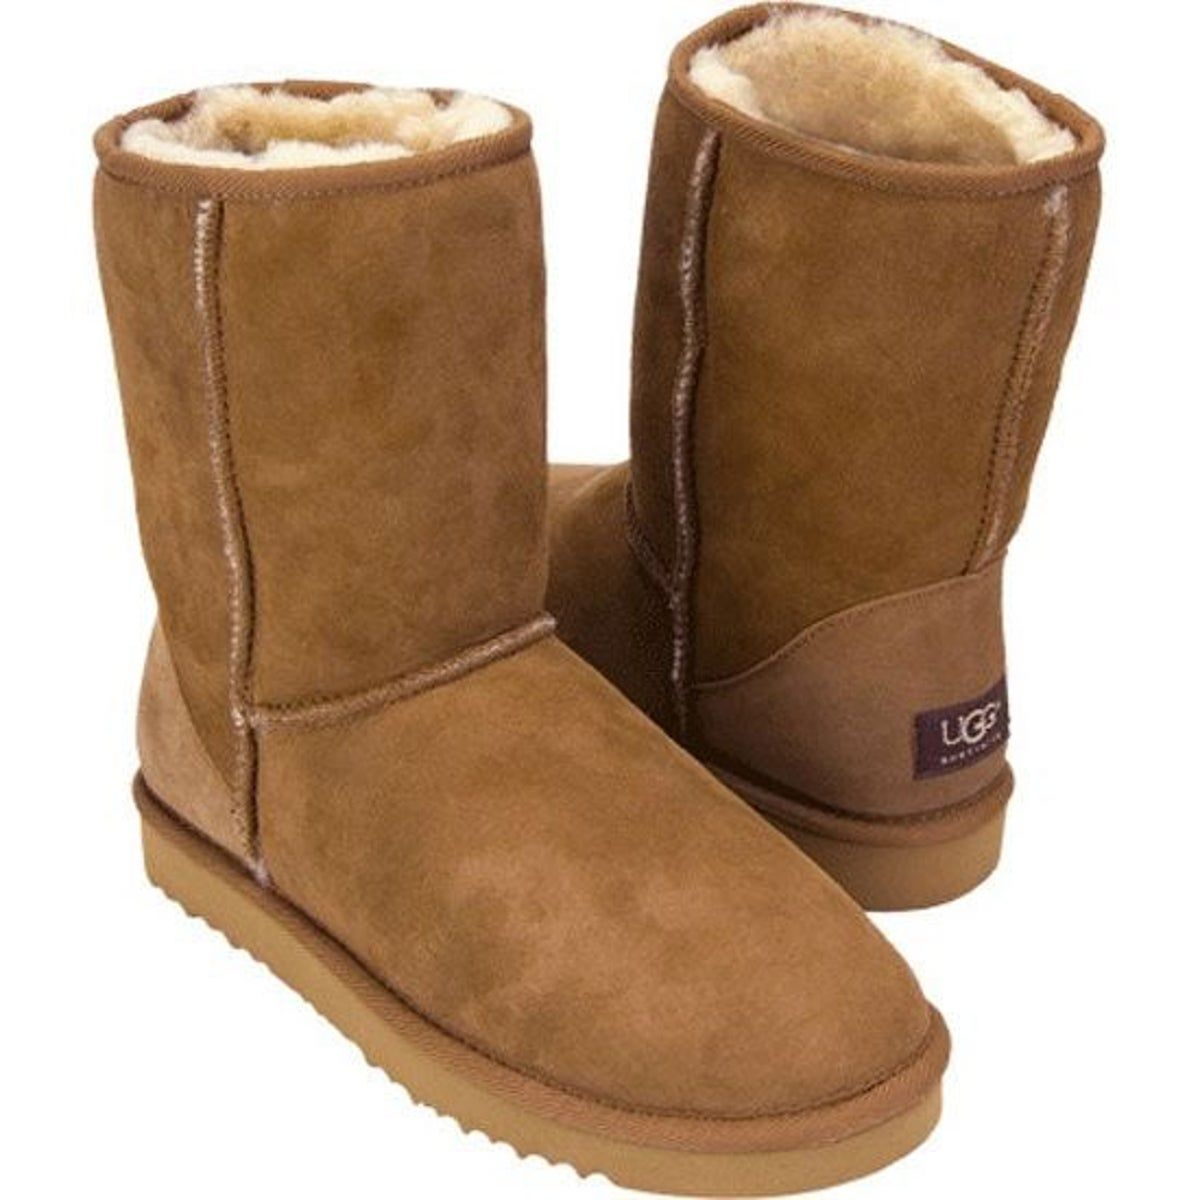 Ugg Classic Ii In 2020 Ugg Boots Ugg Boots Cheap Uggs